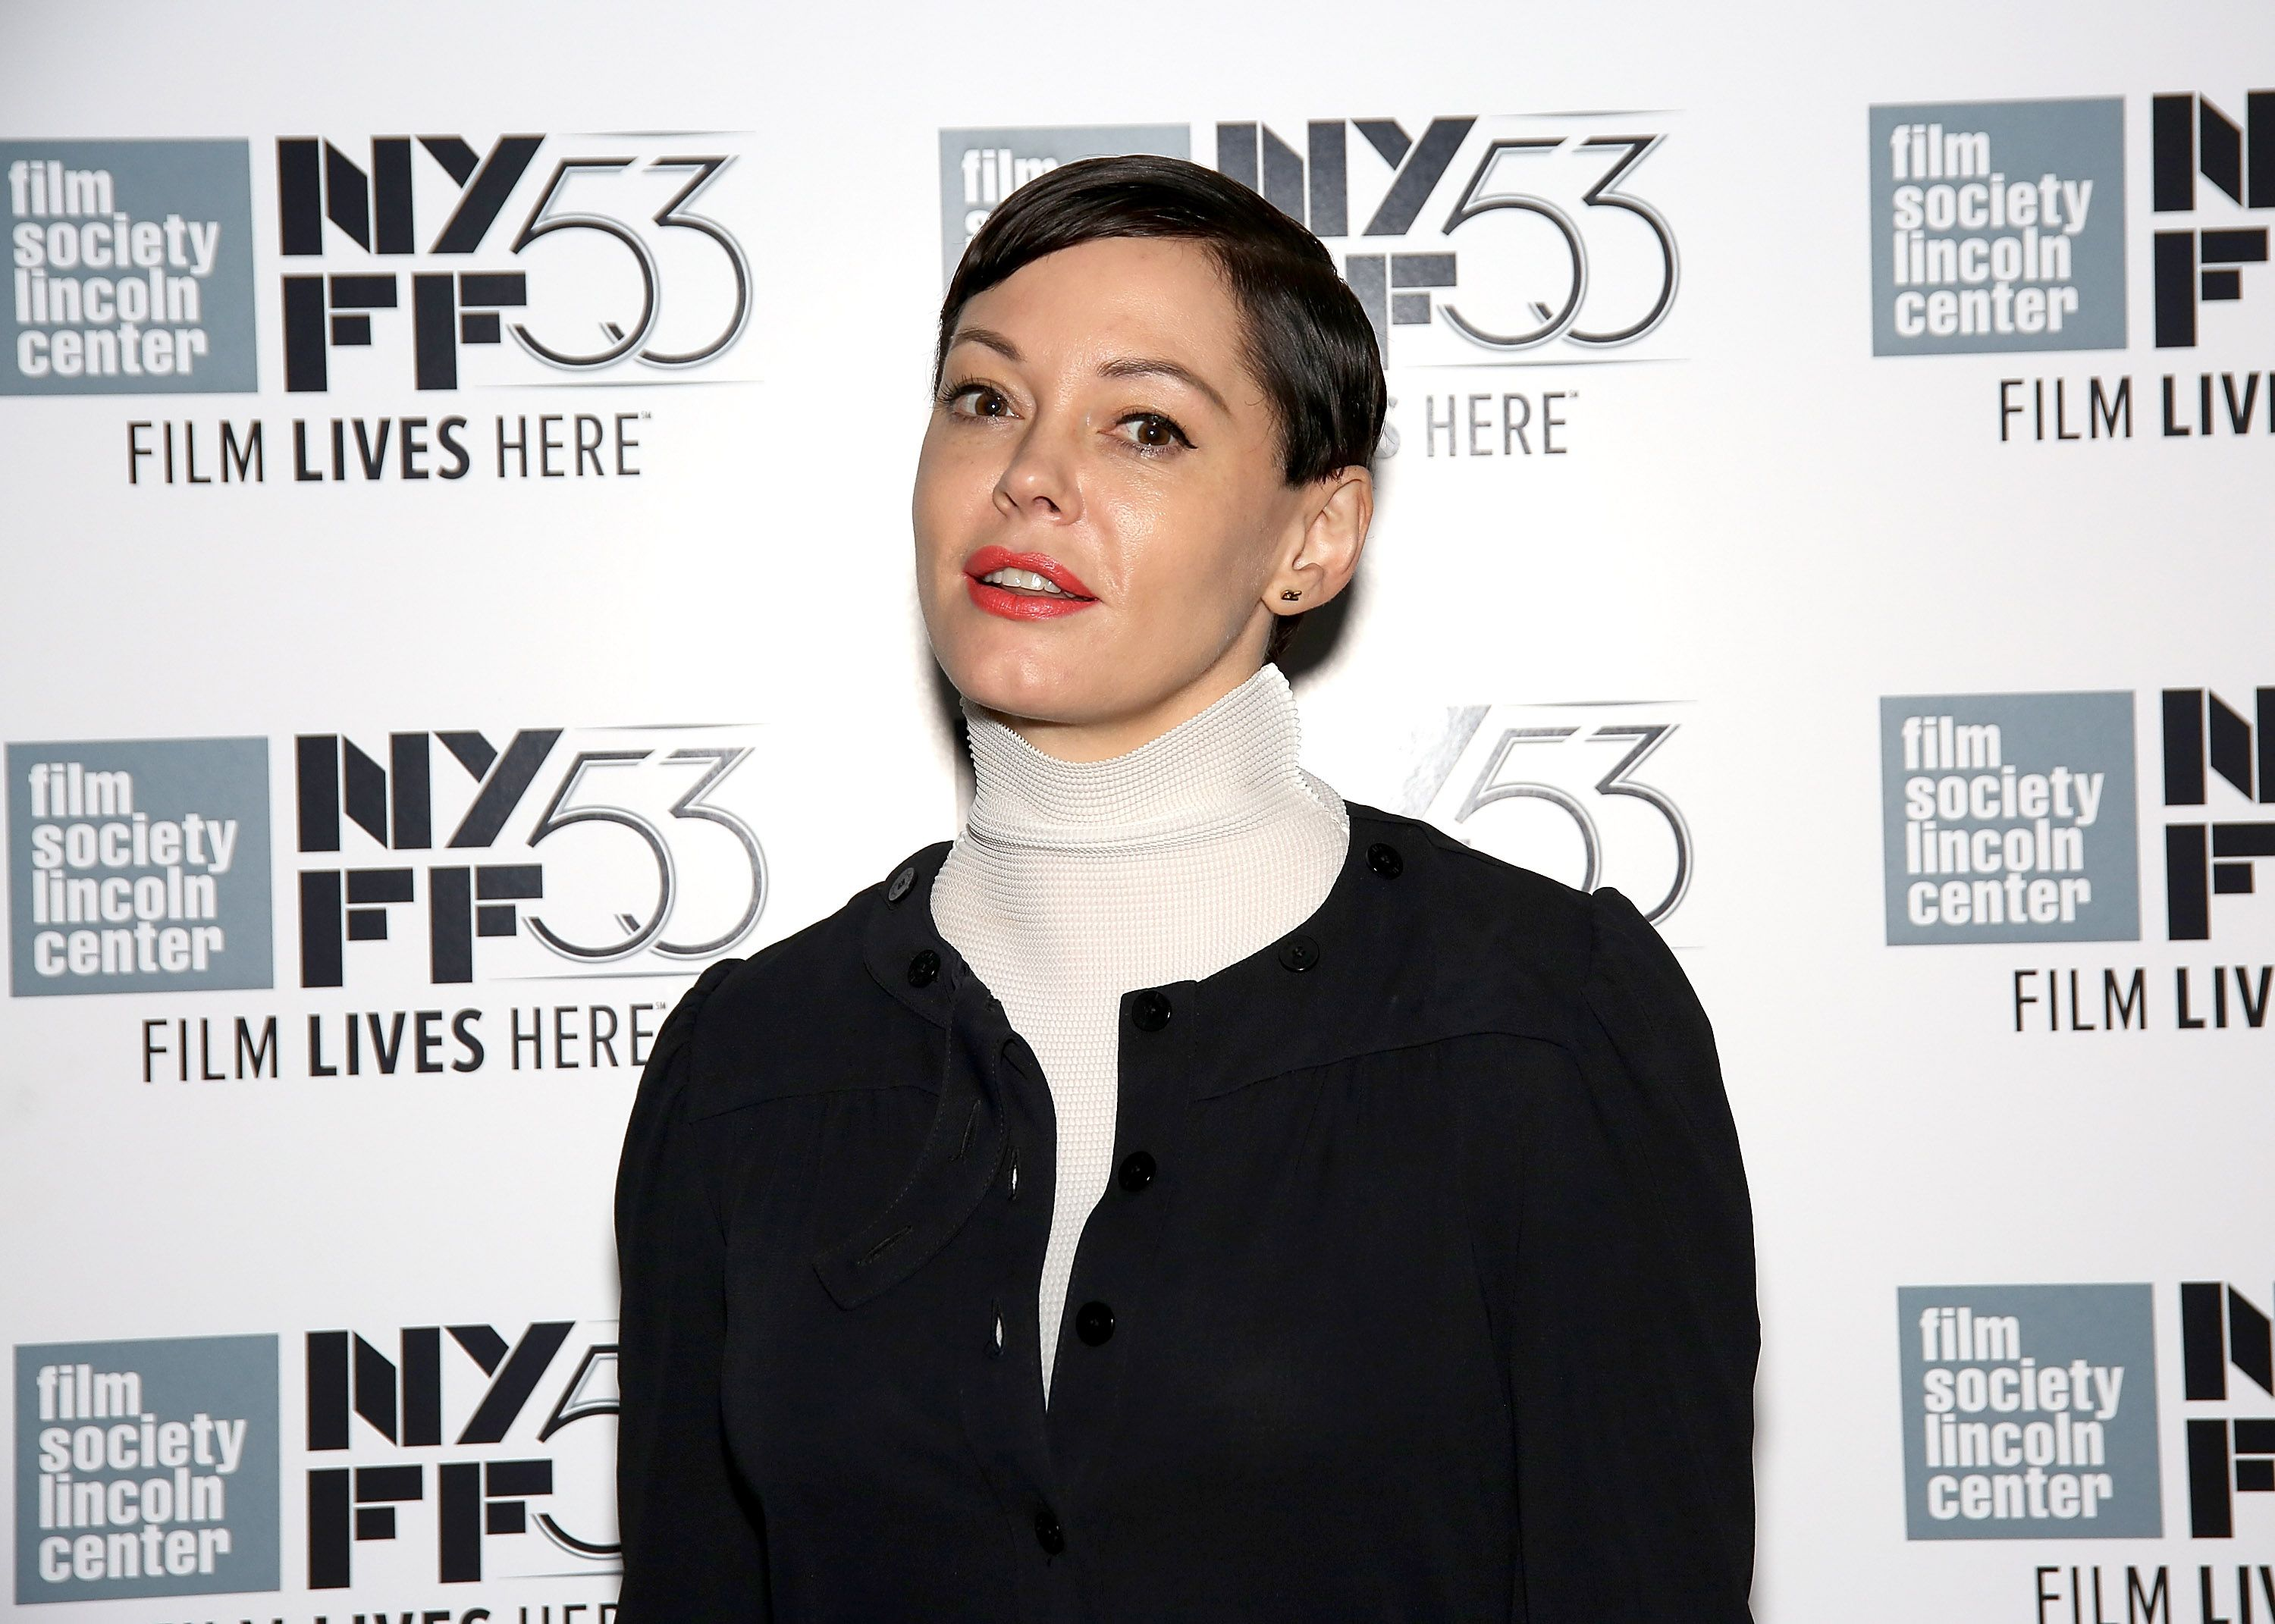 """Rose McGowan at the 53rd New York Film Festival """"NYFF Live"""" on October 4, 2015, in New York City 